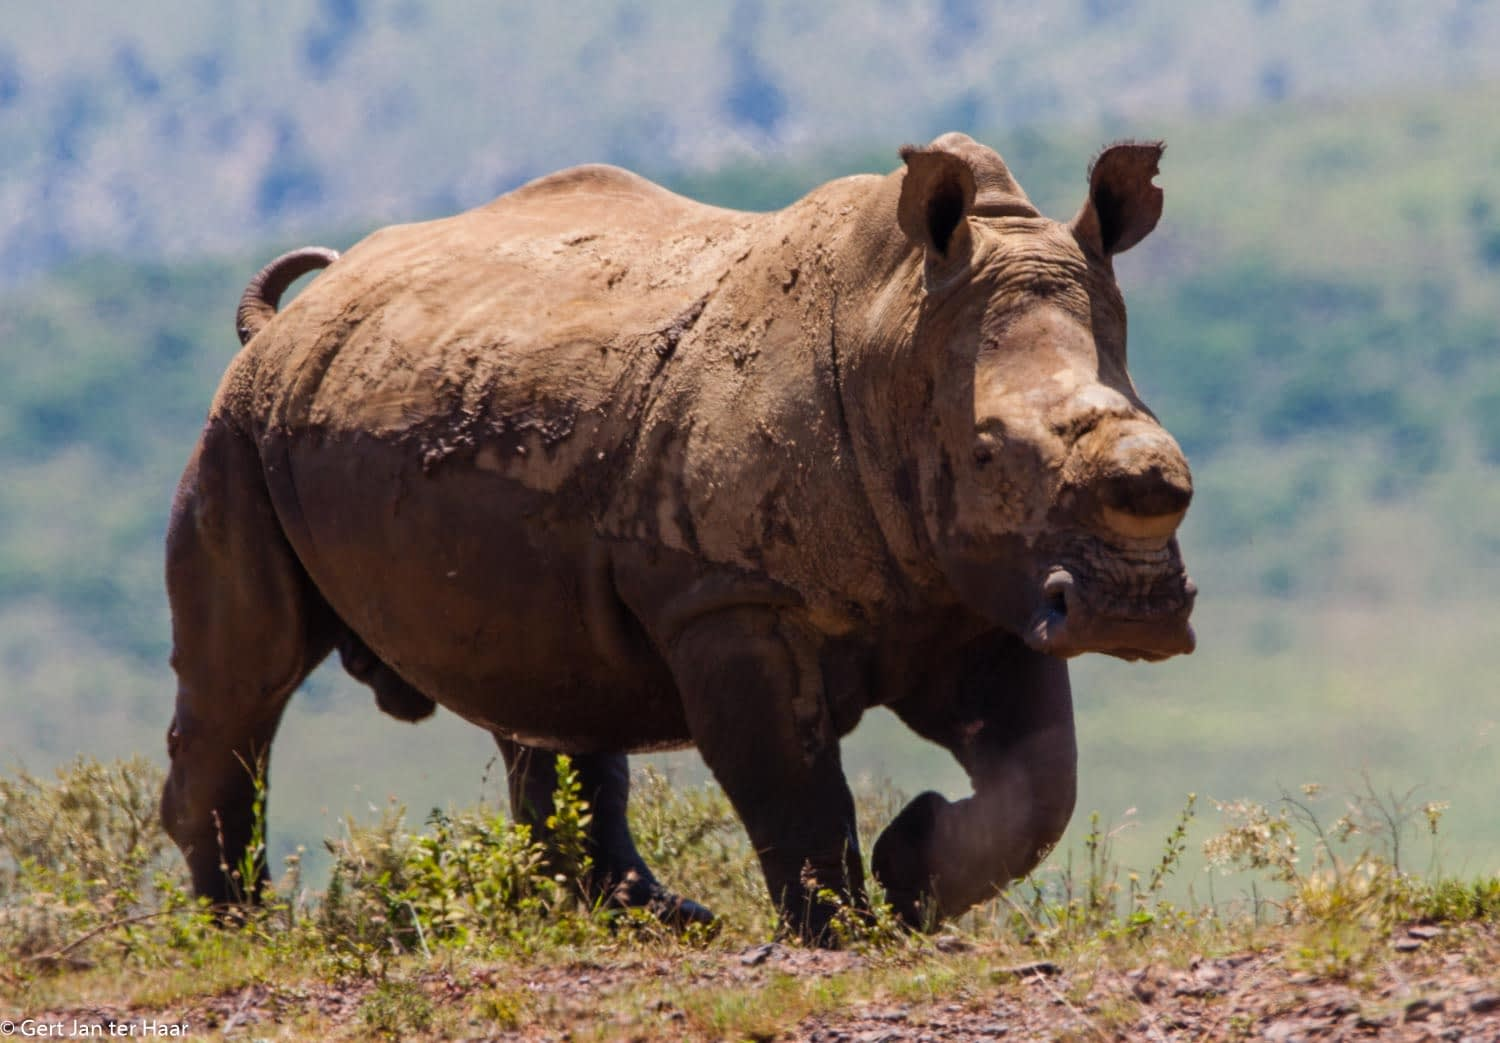 rhino close view, Ithala National Park, South Africa